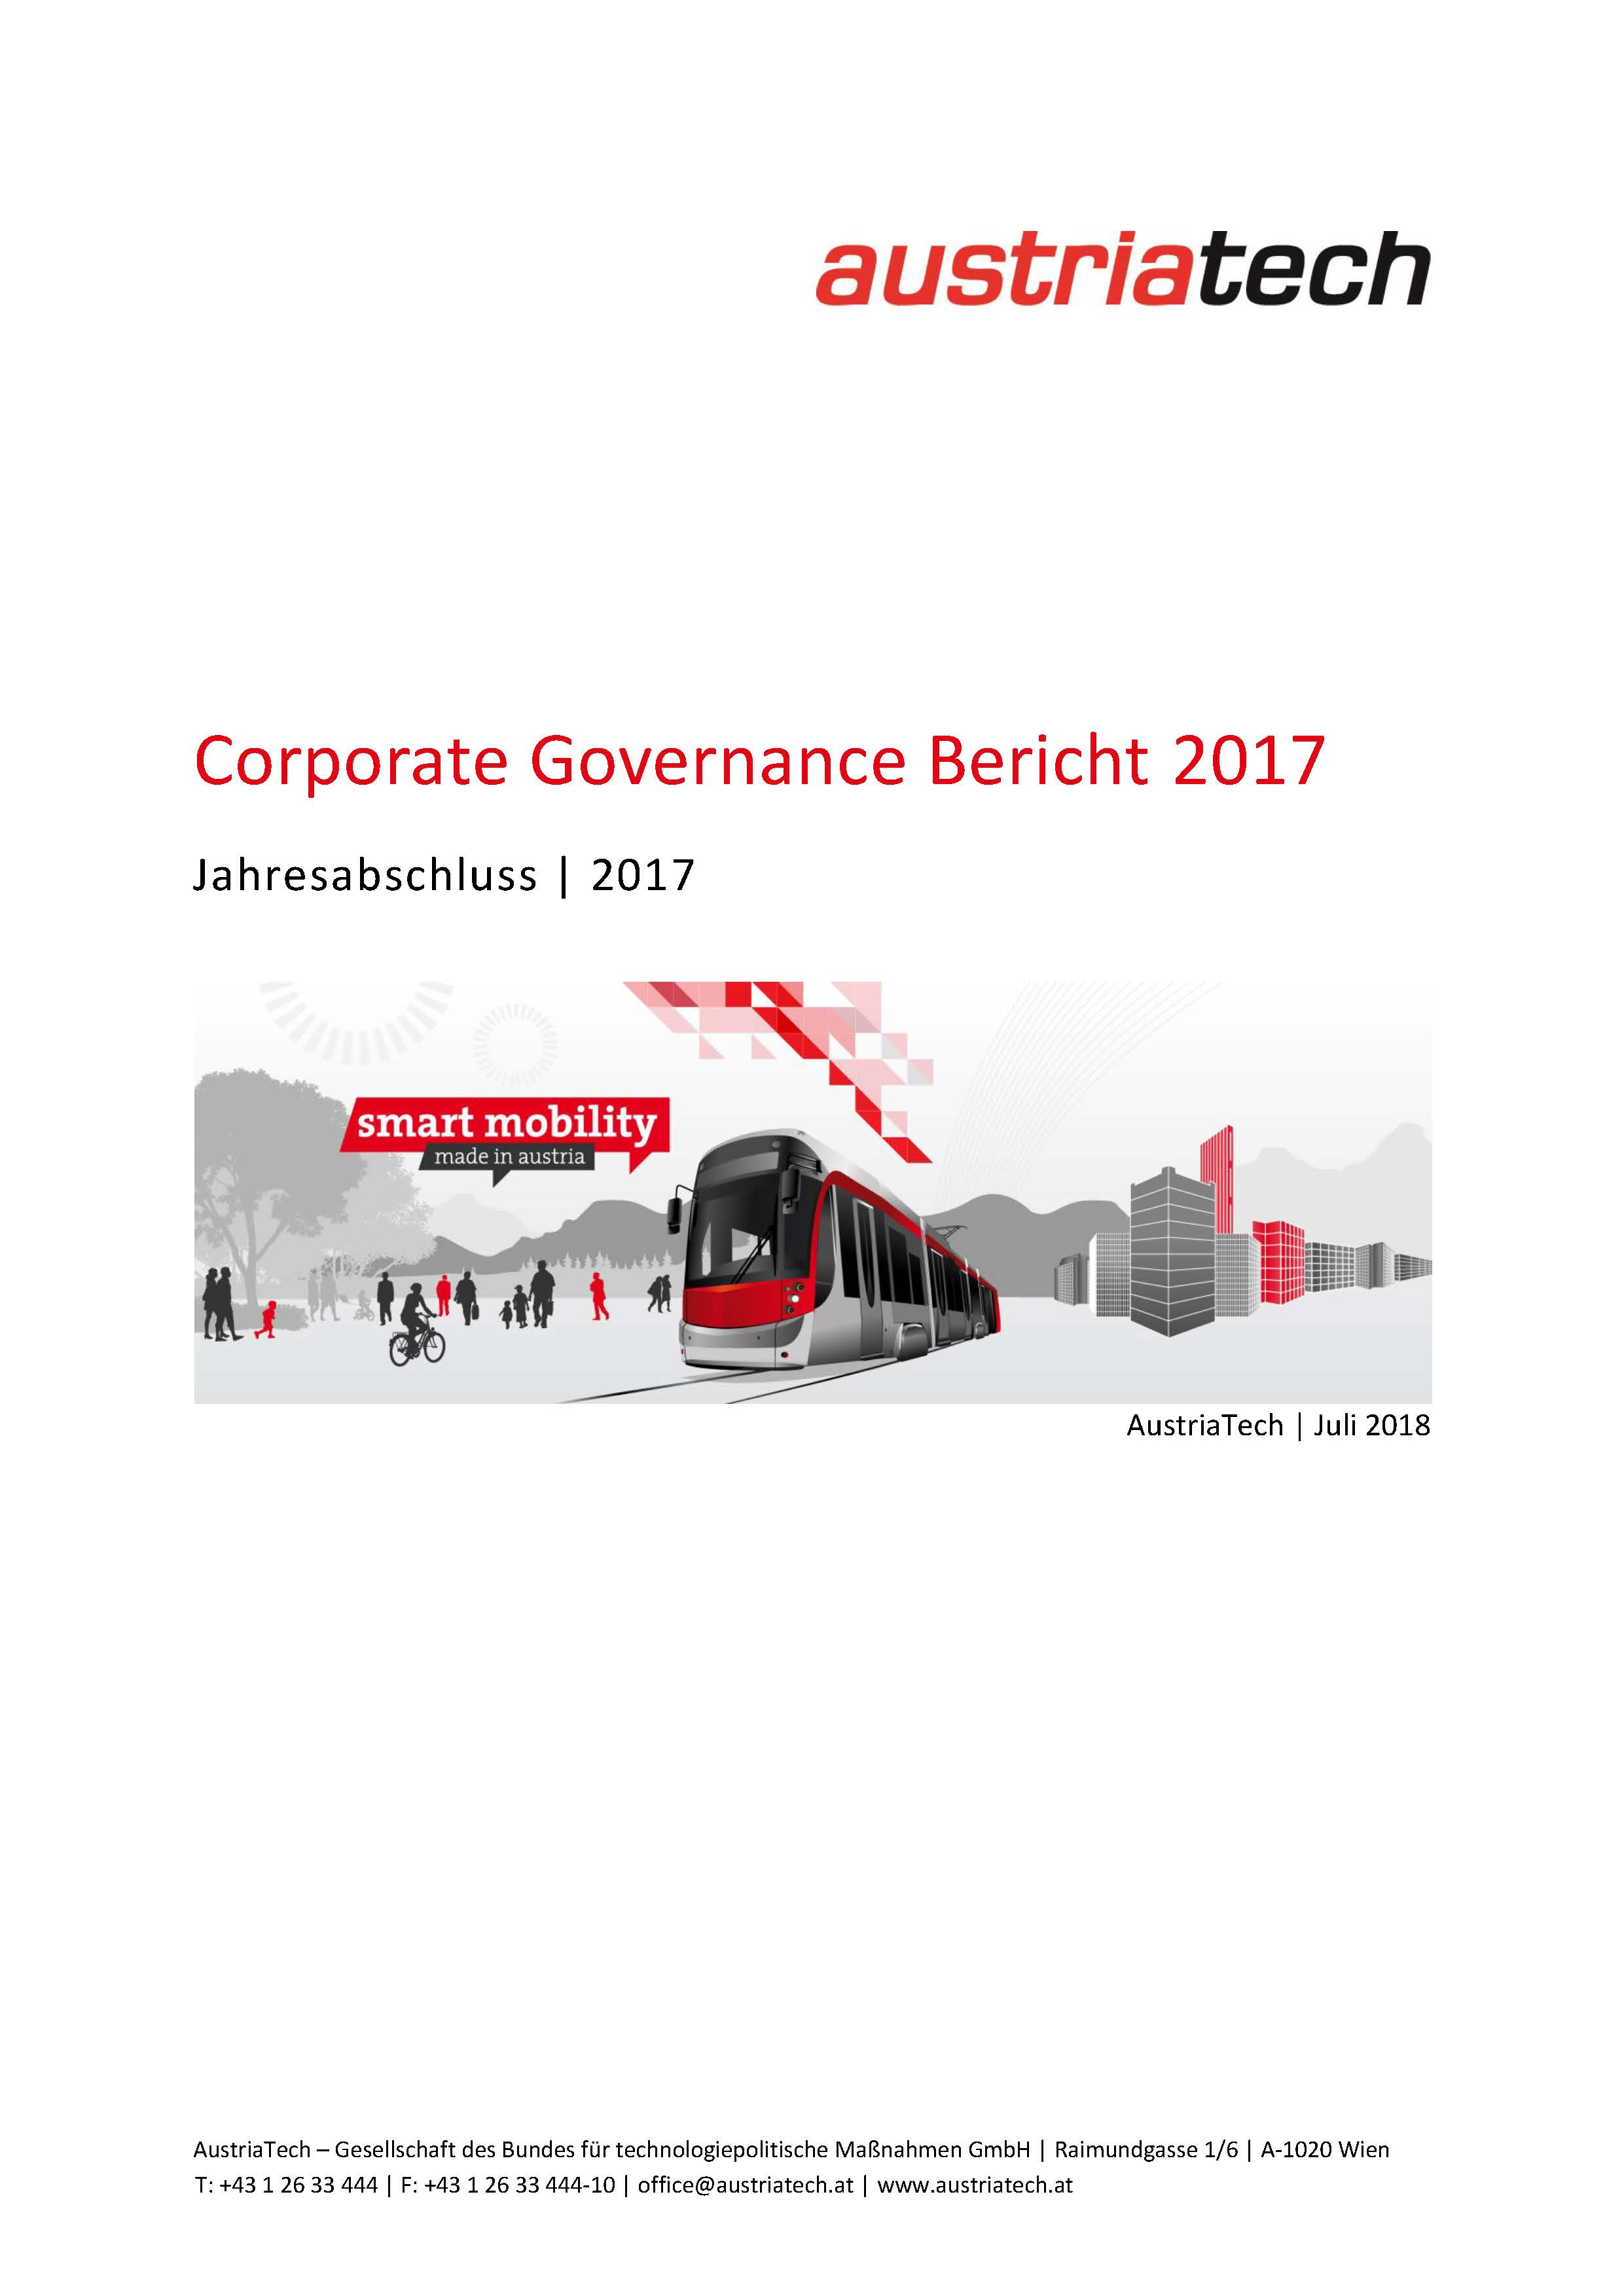 AustriaTech Corporate Governance 2017